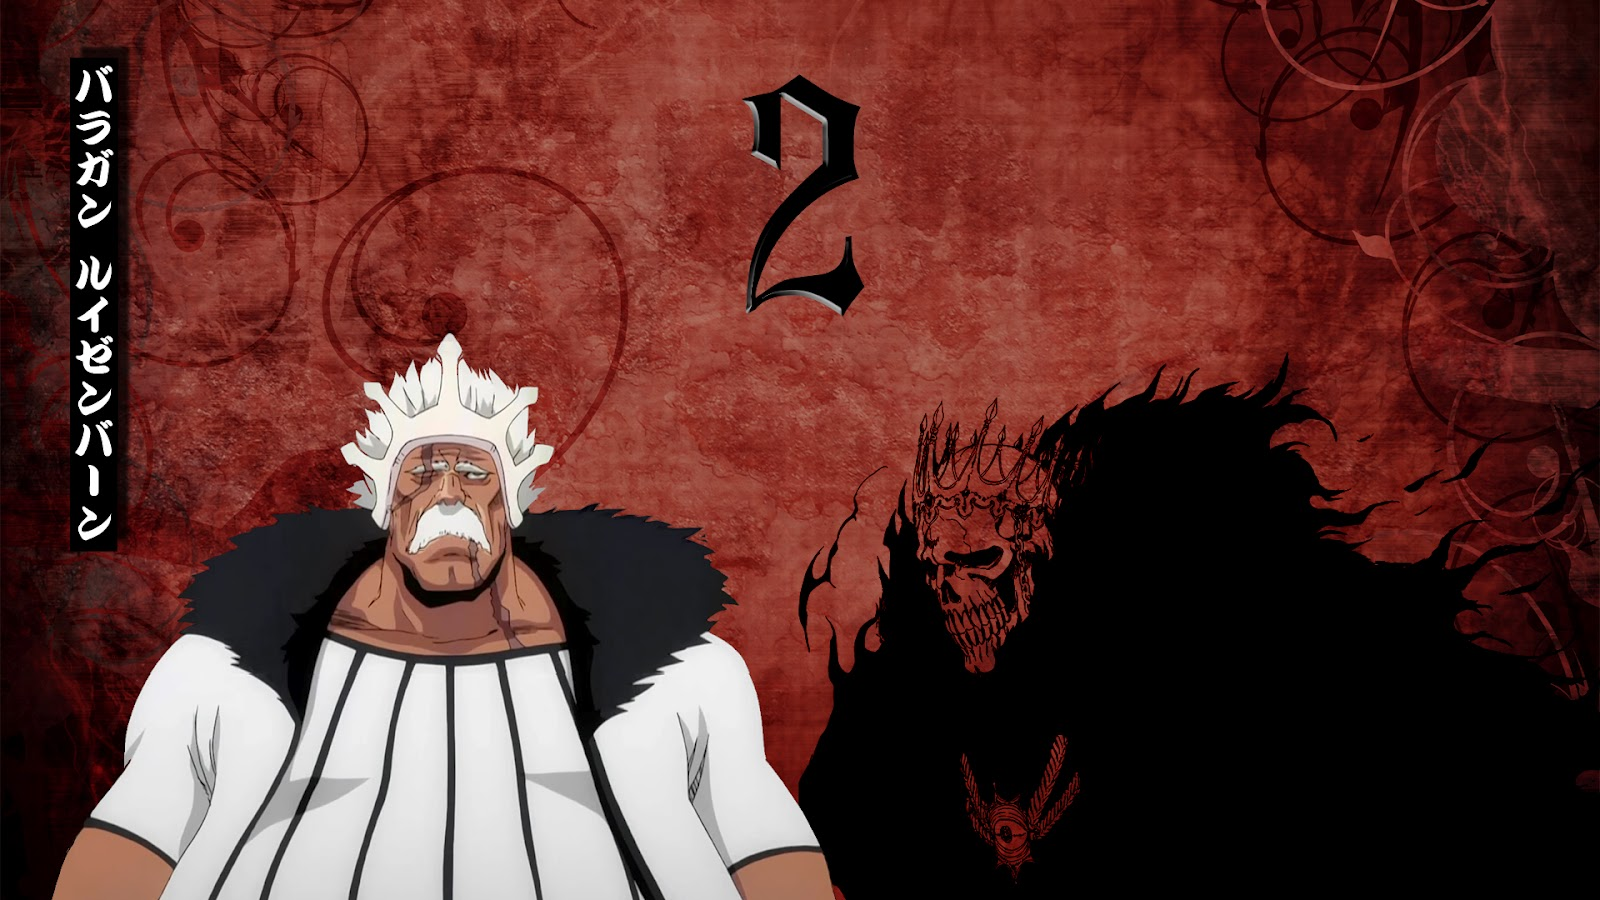 Wallpaper Bleach Arrancar